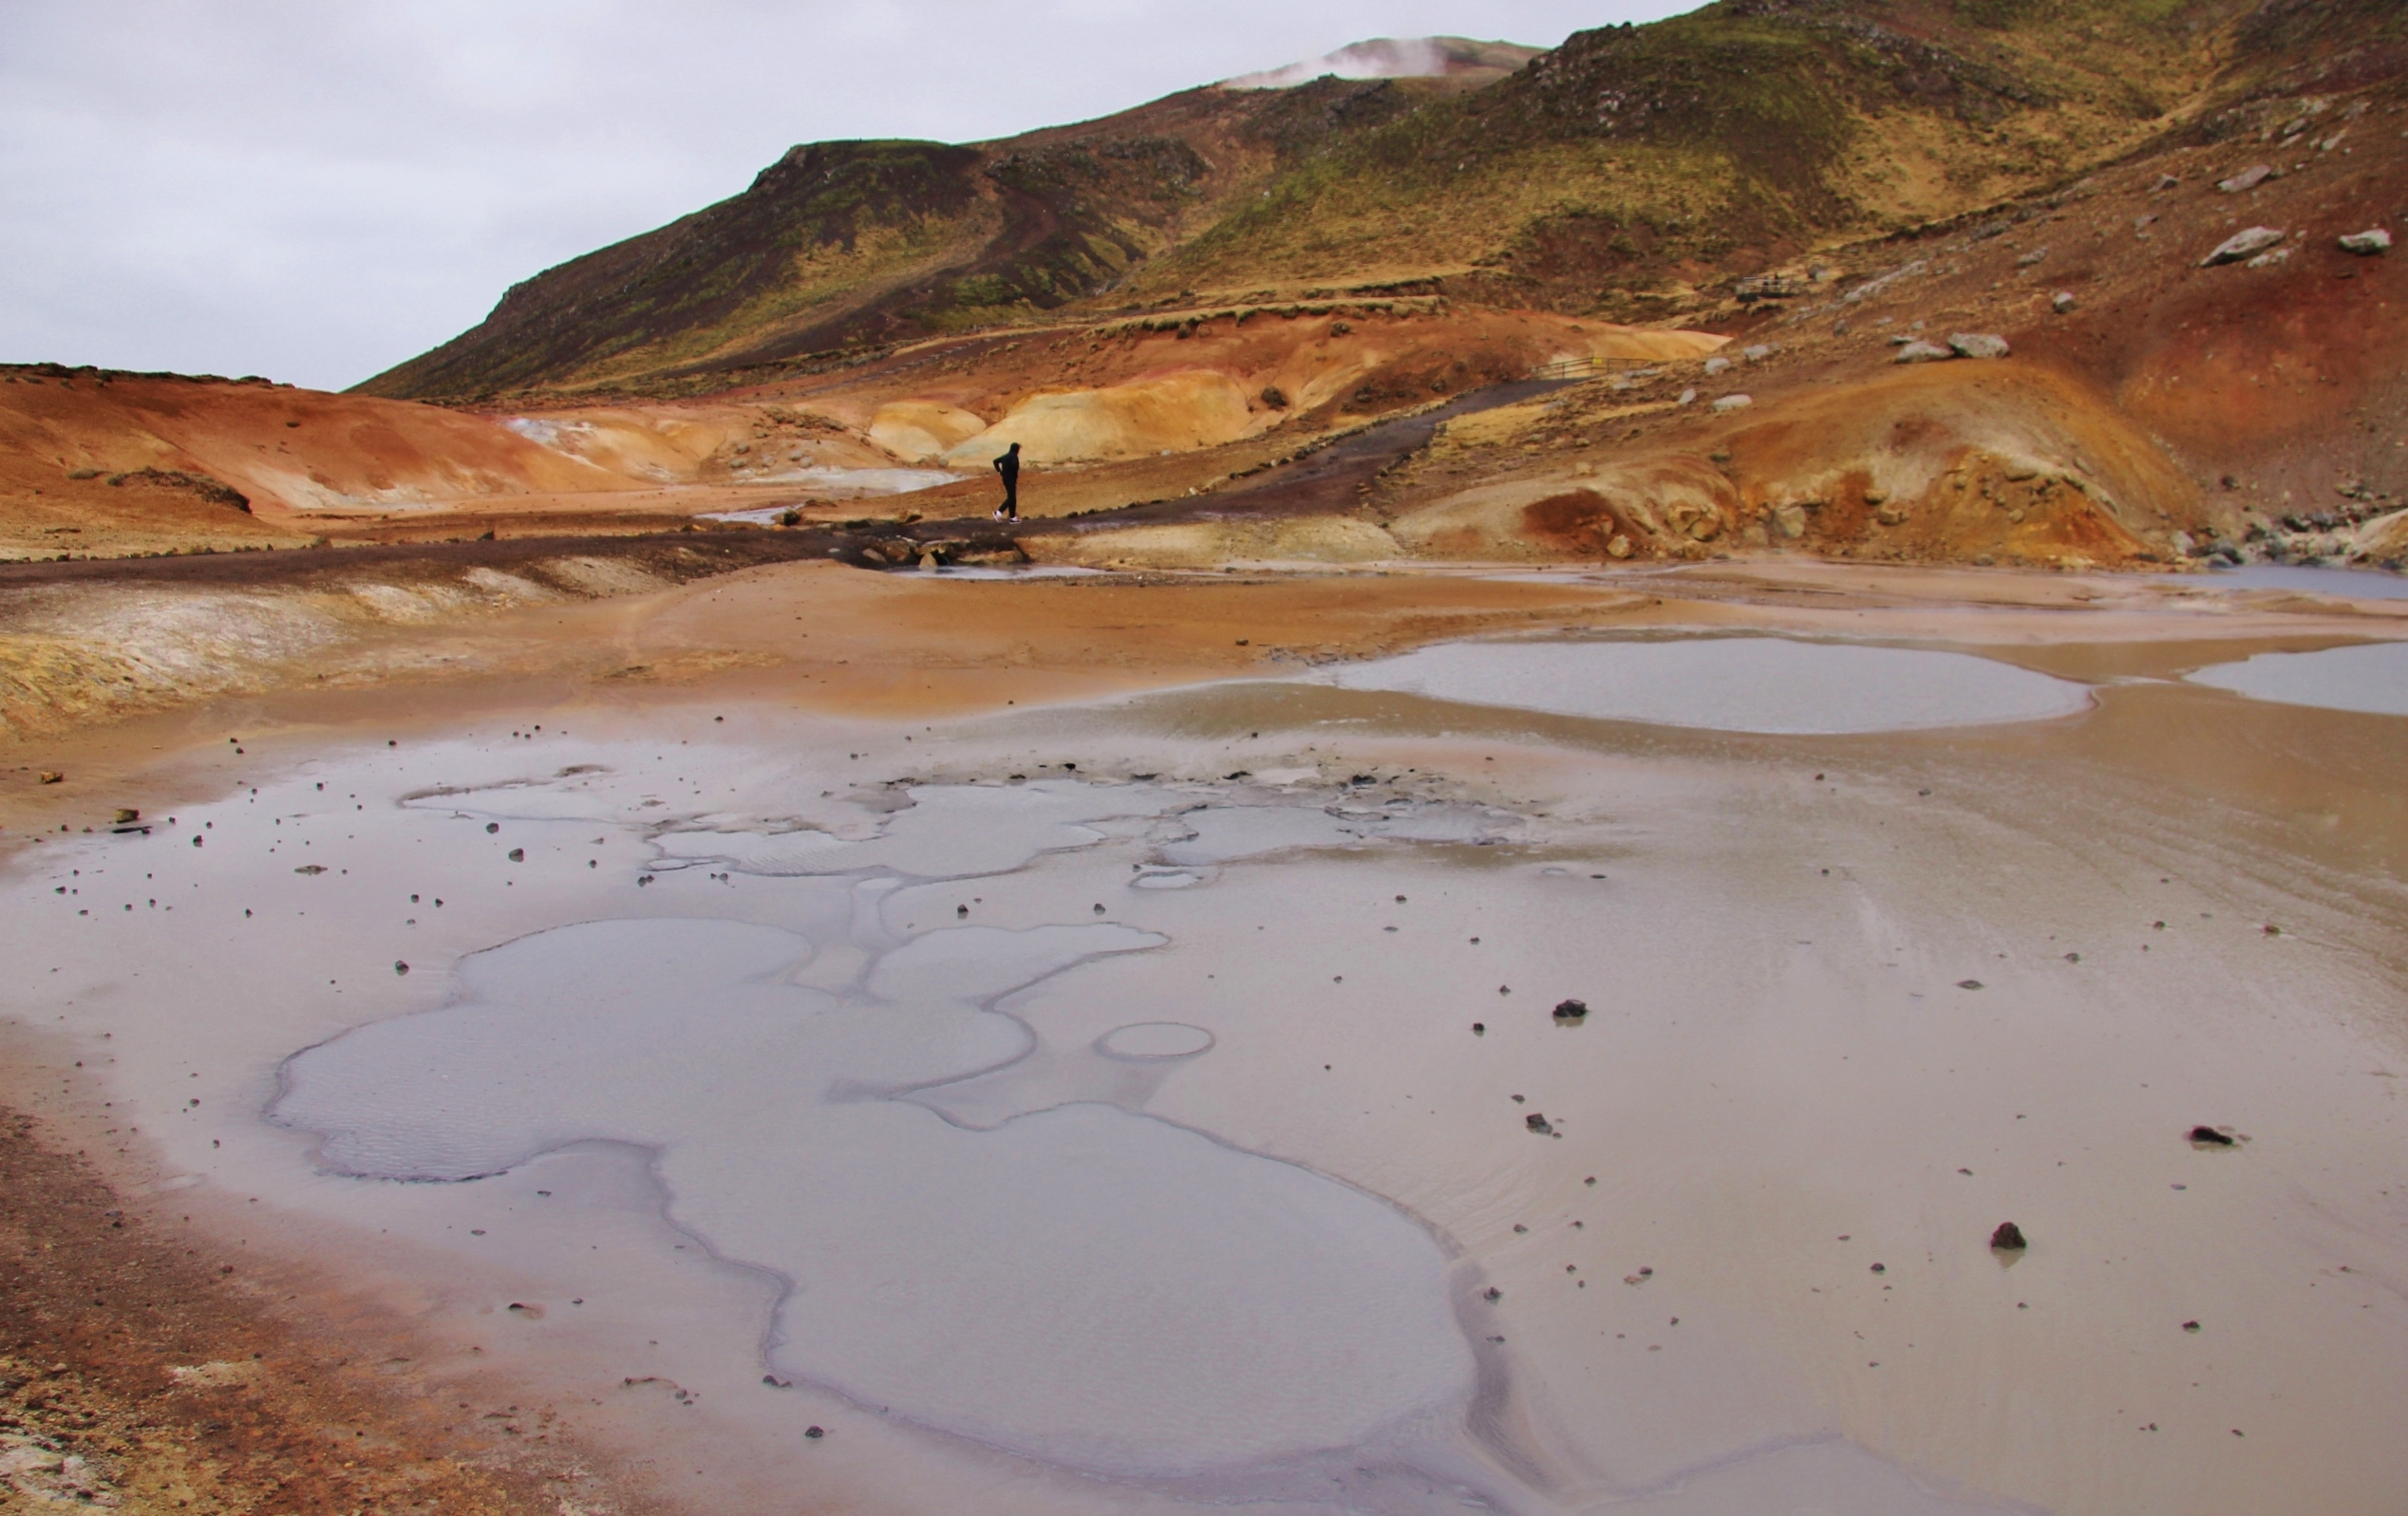 Seltun geothermal area, Iceland